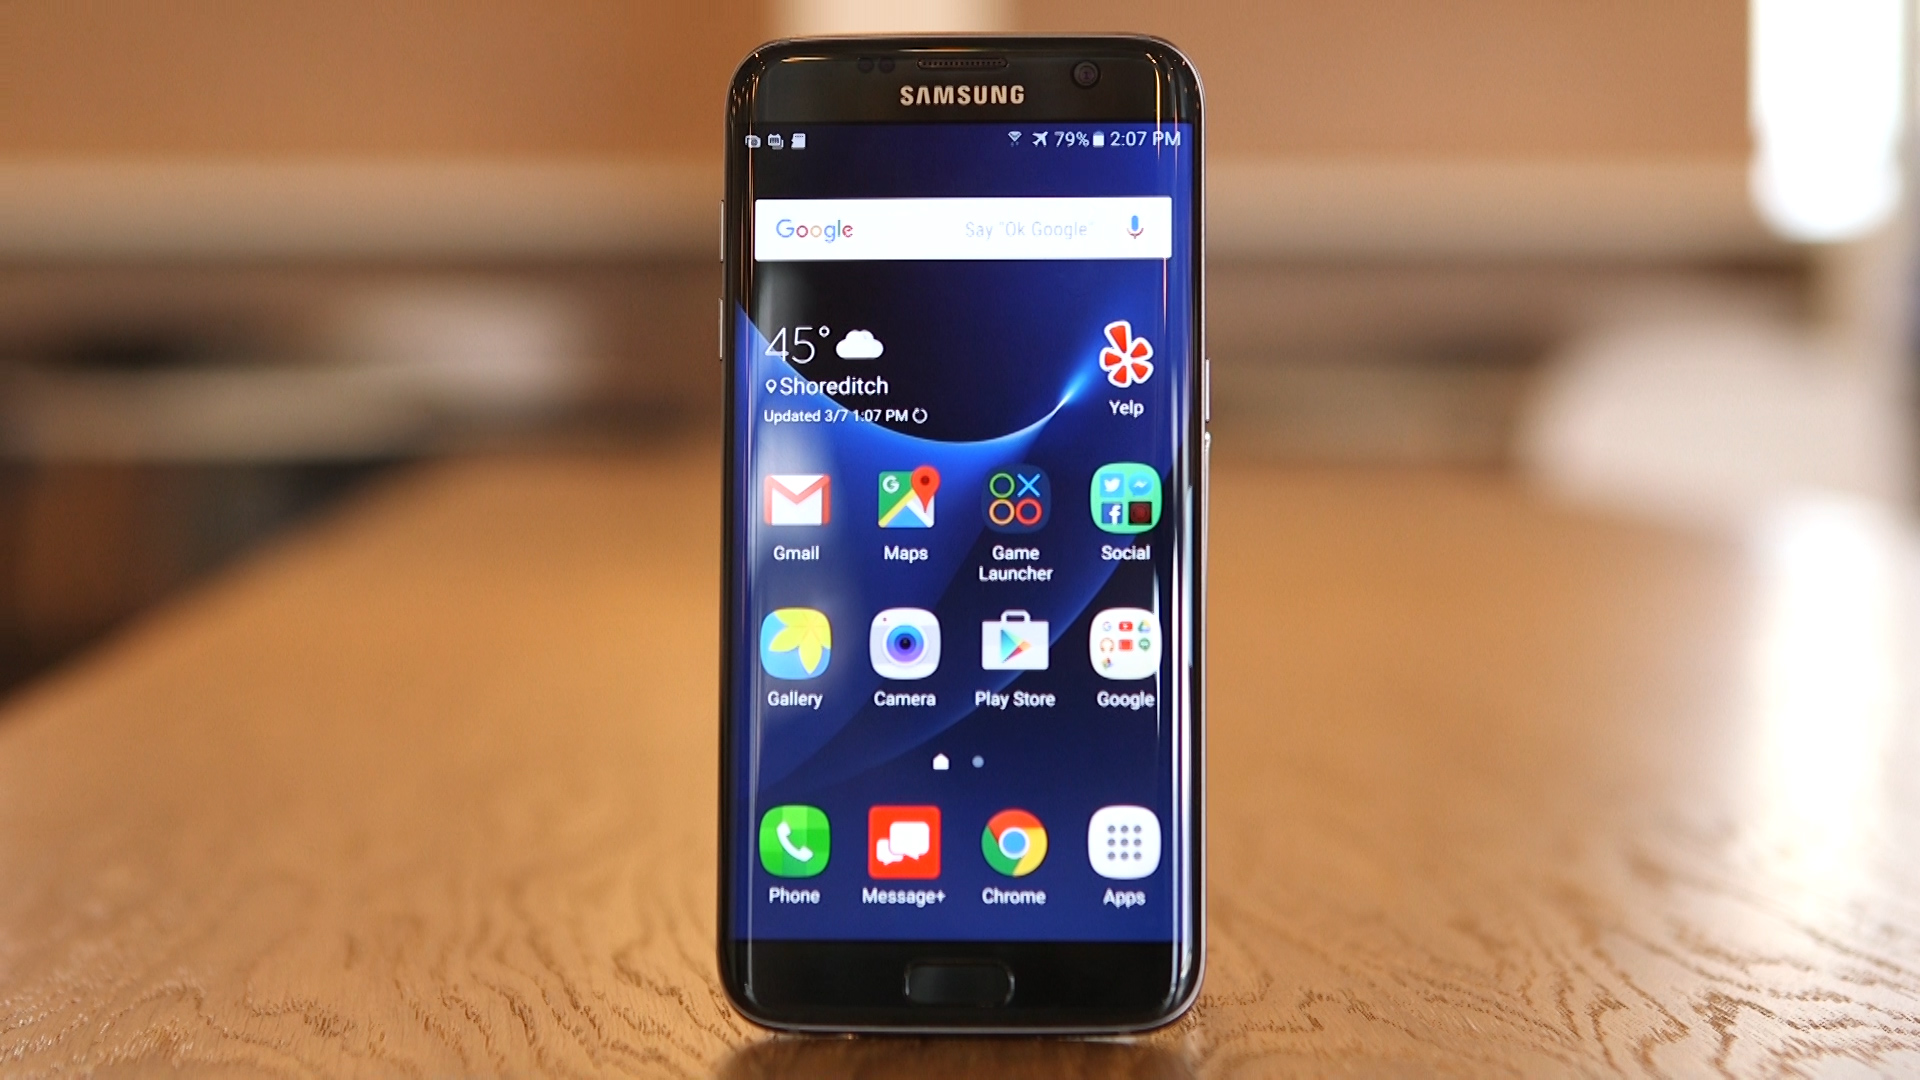 Video: Yep, the Galaxy S7 Edge really is better than the GS7